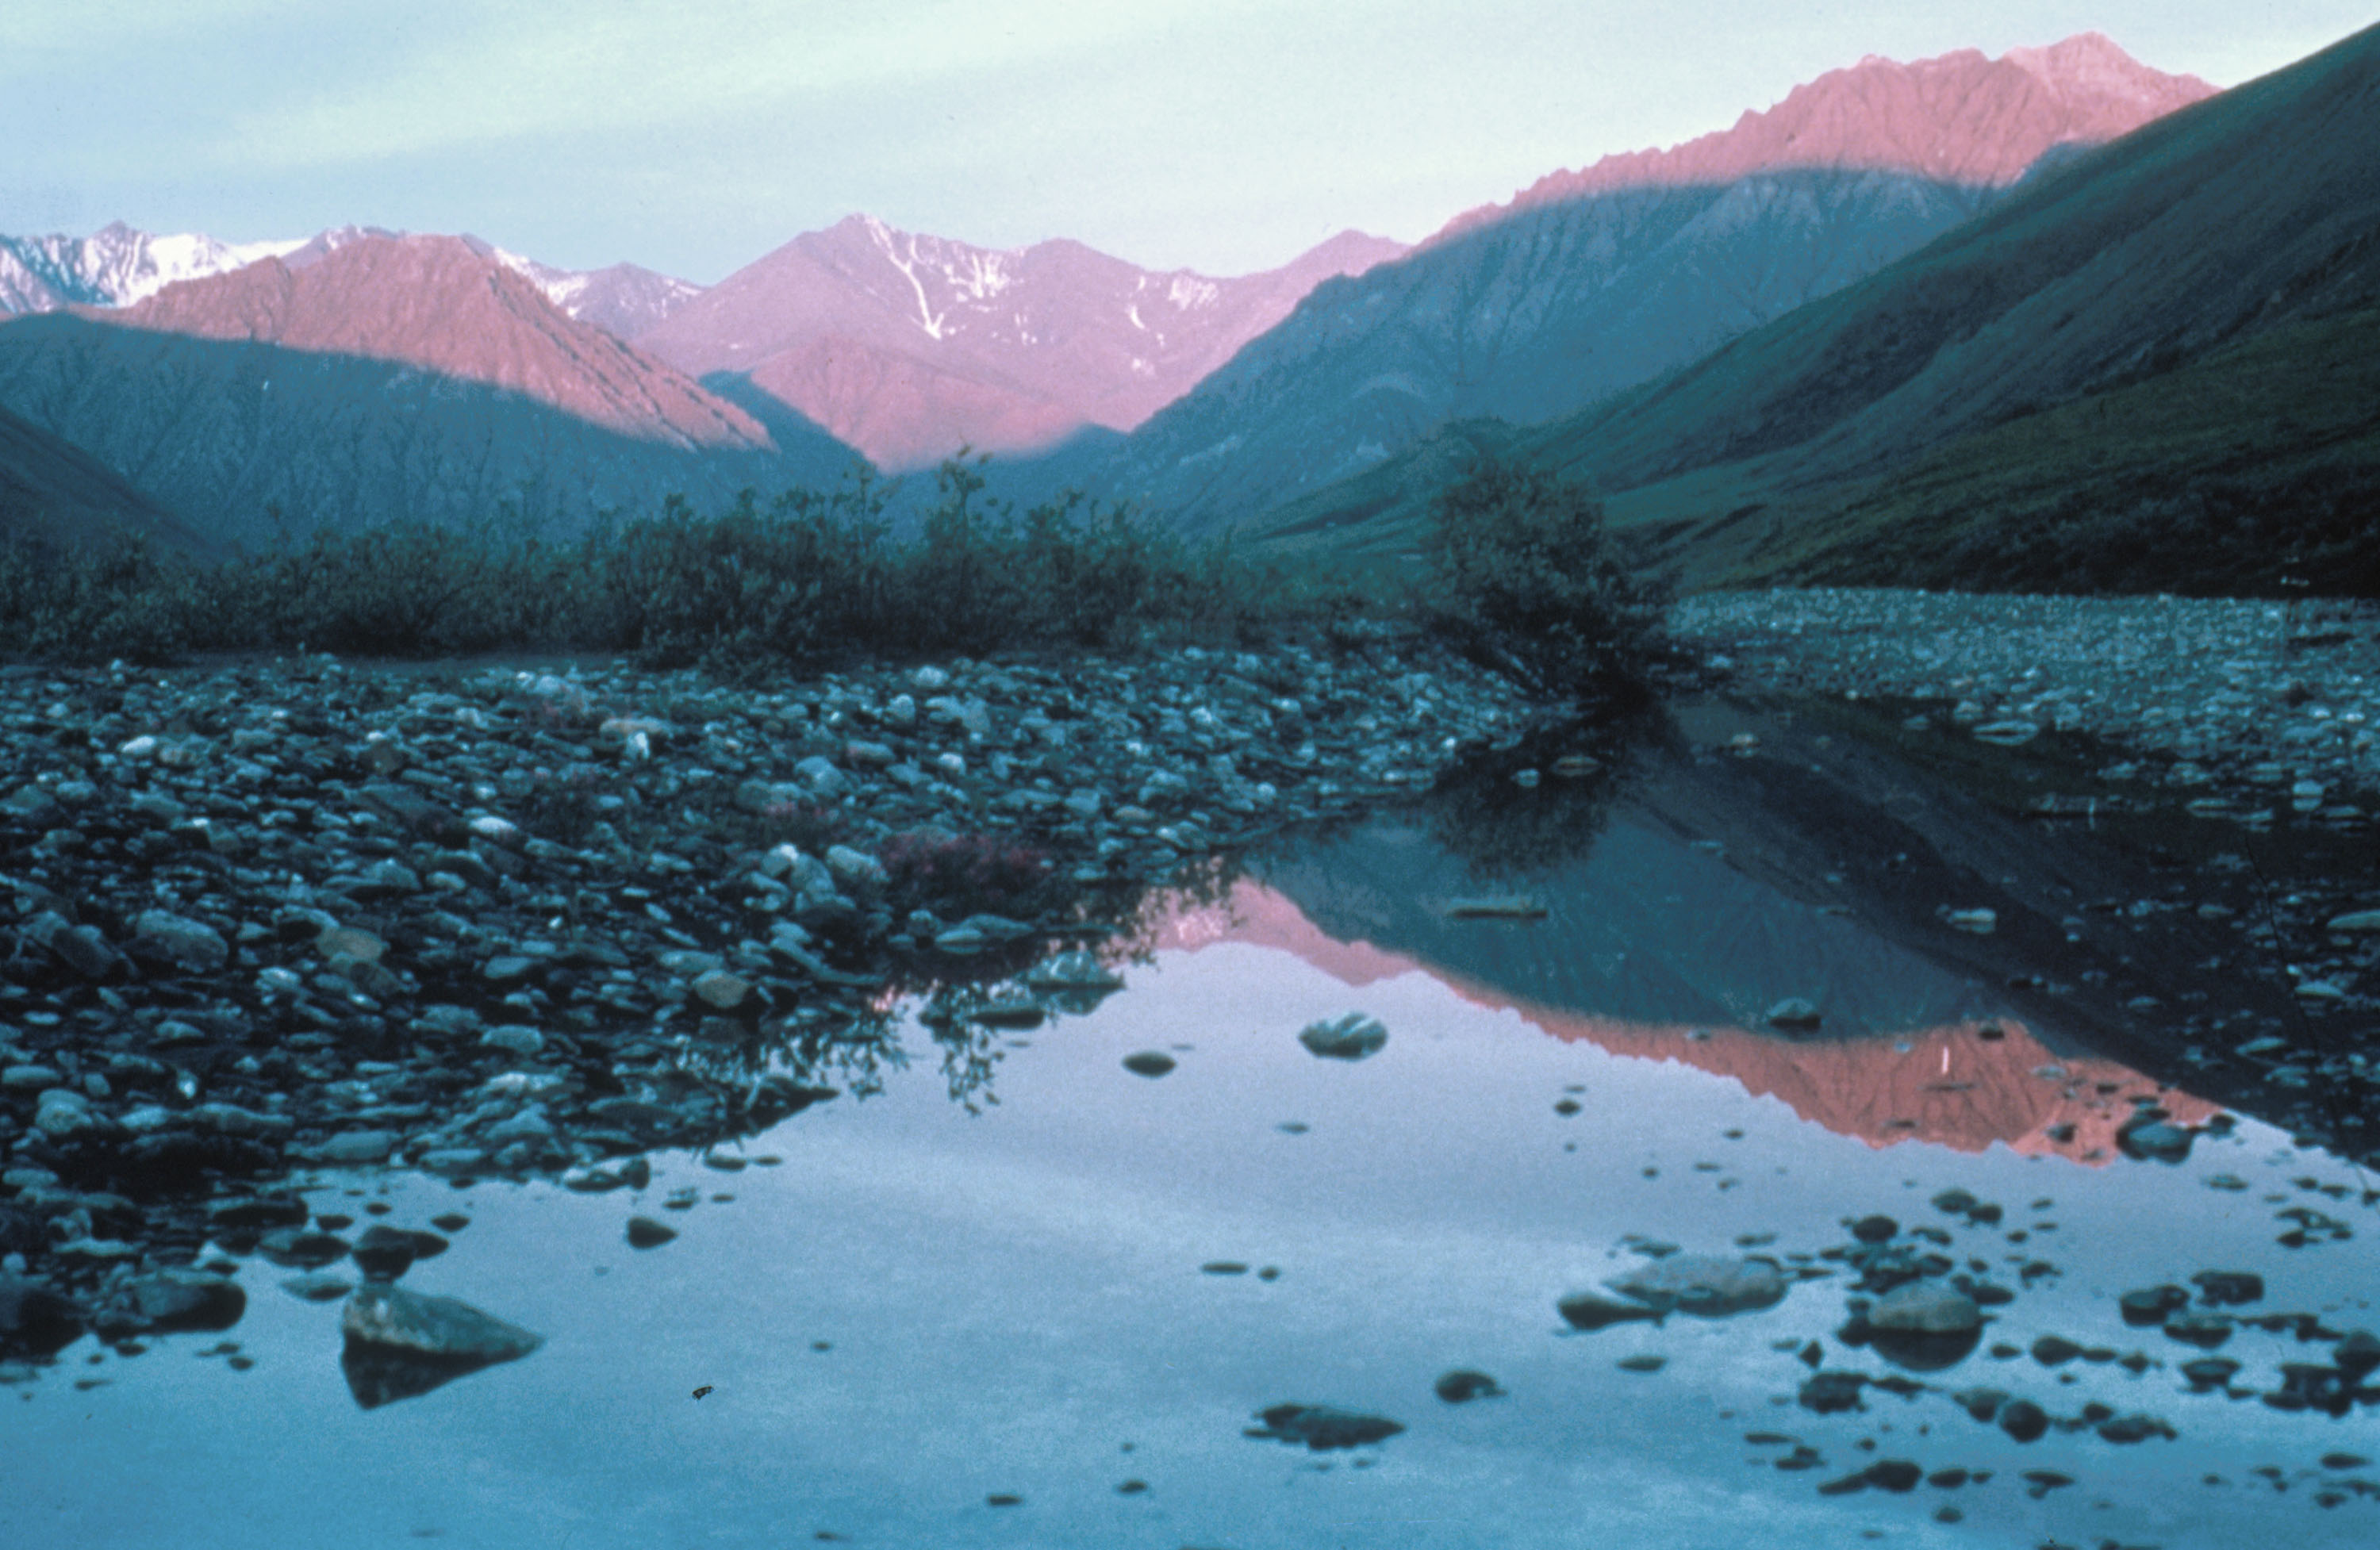 This undated photo shows the Kongakut Valley in the Arctic National Wildlife Refuge in Alaska